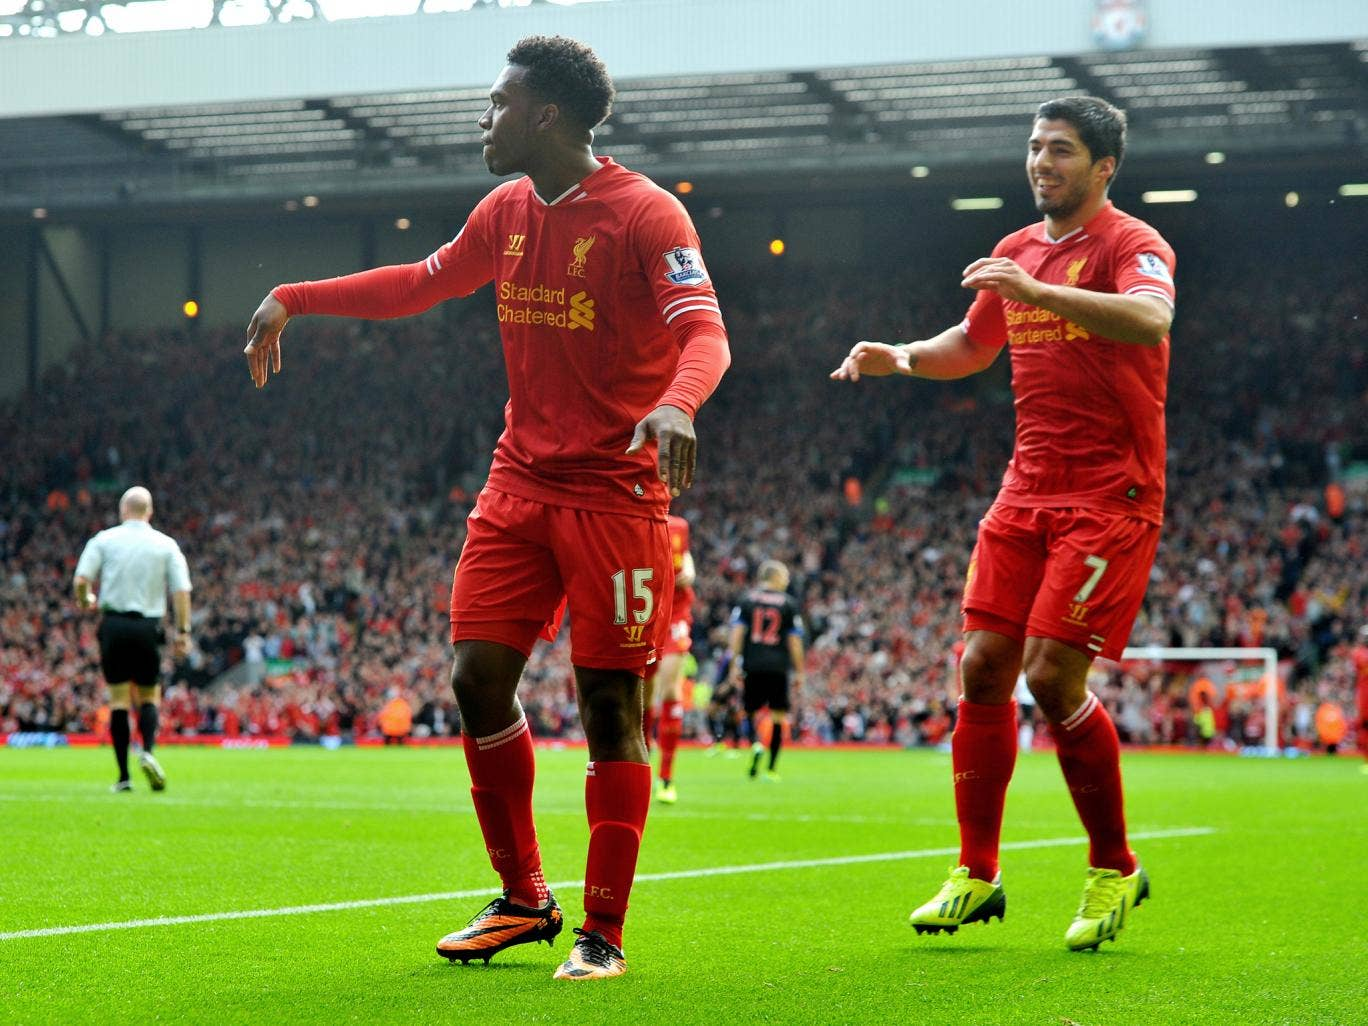 Daniel Sturridge and Luis Suarez celebrate after Liverpool go 2-0 up against Crystal Palace